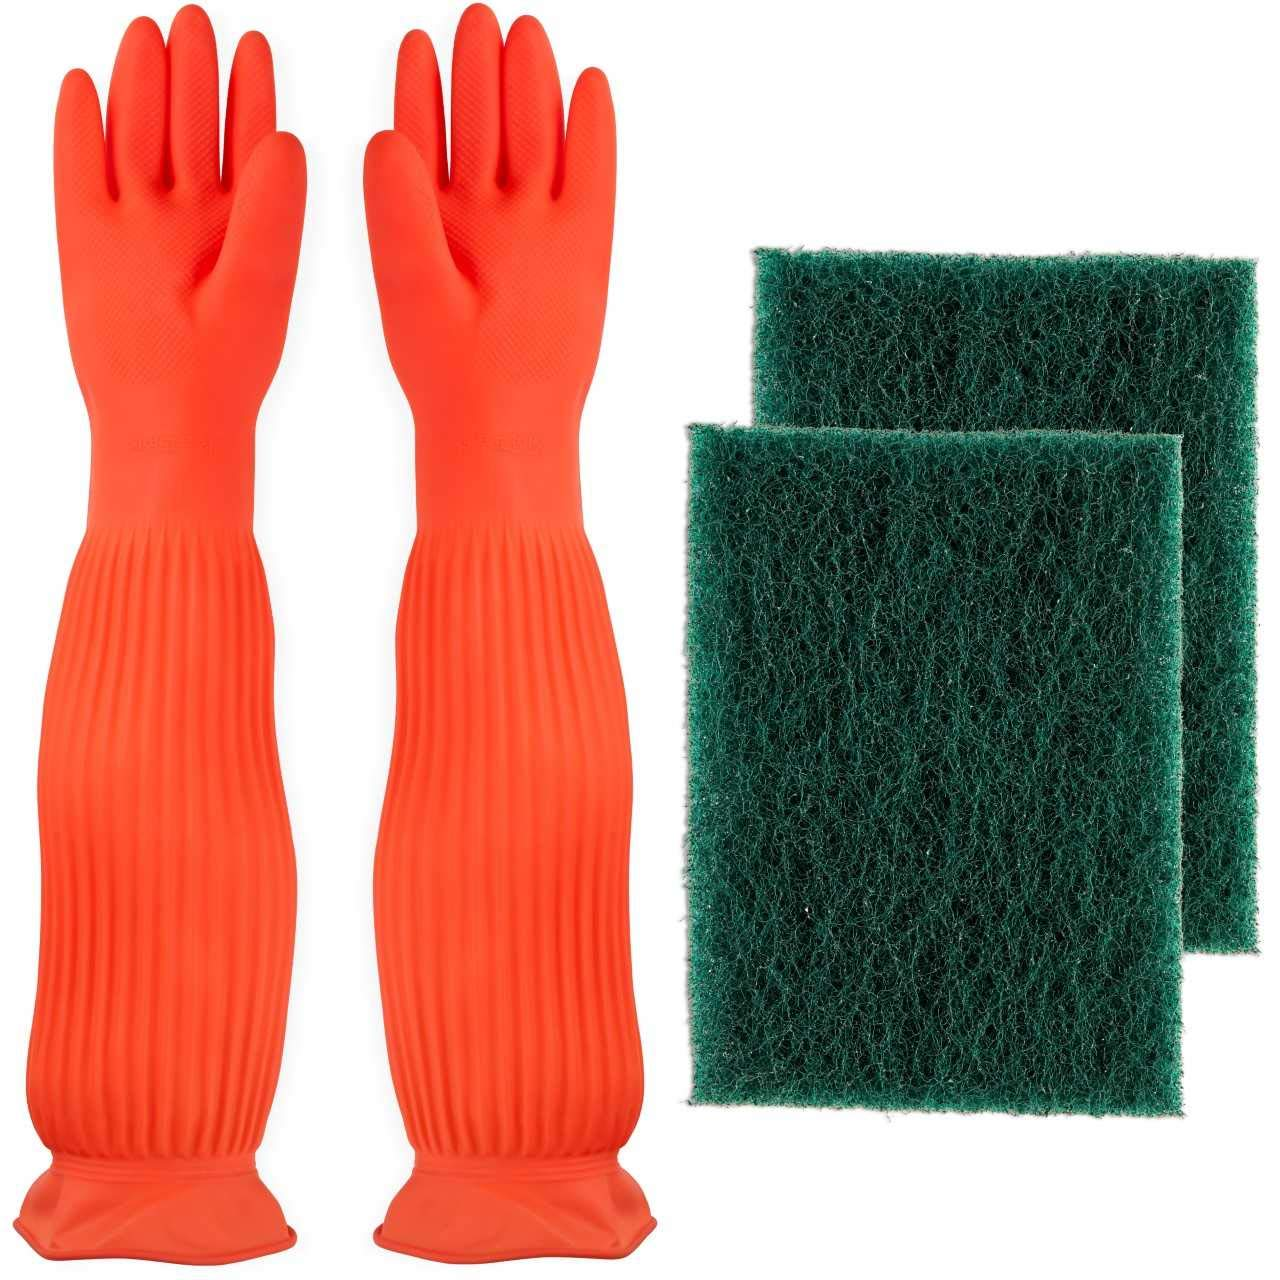 AroPaw Fish Tank Cleaning Set Includes Waterproof BPA Free Gloves, 2 Pack Algae Sponge Pad Remover Glass Aquariums